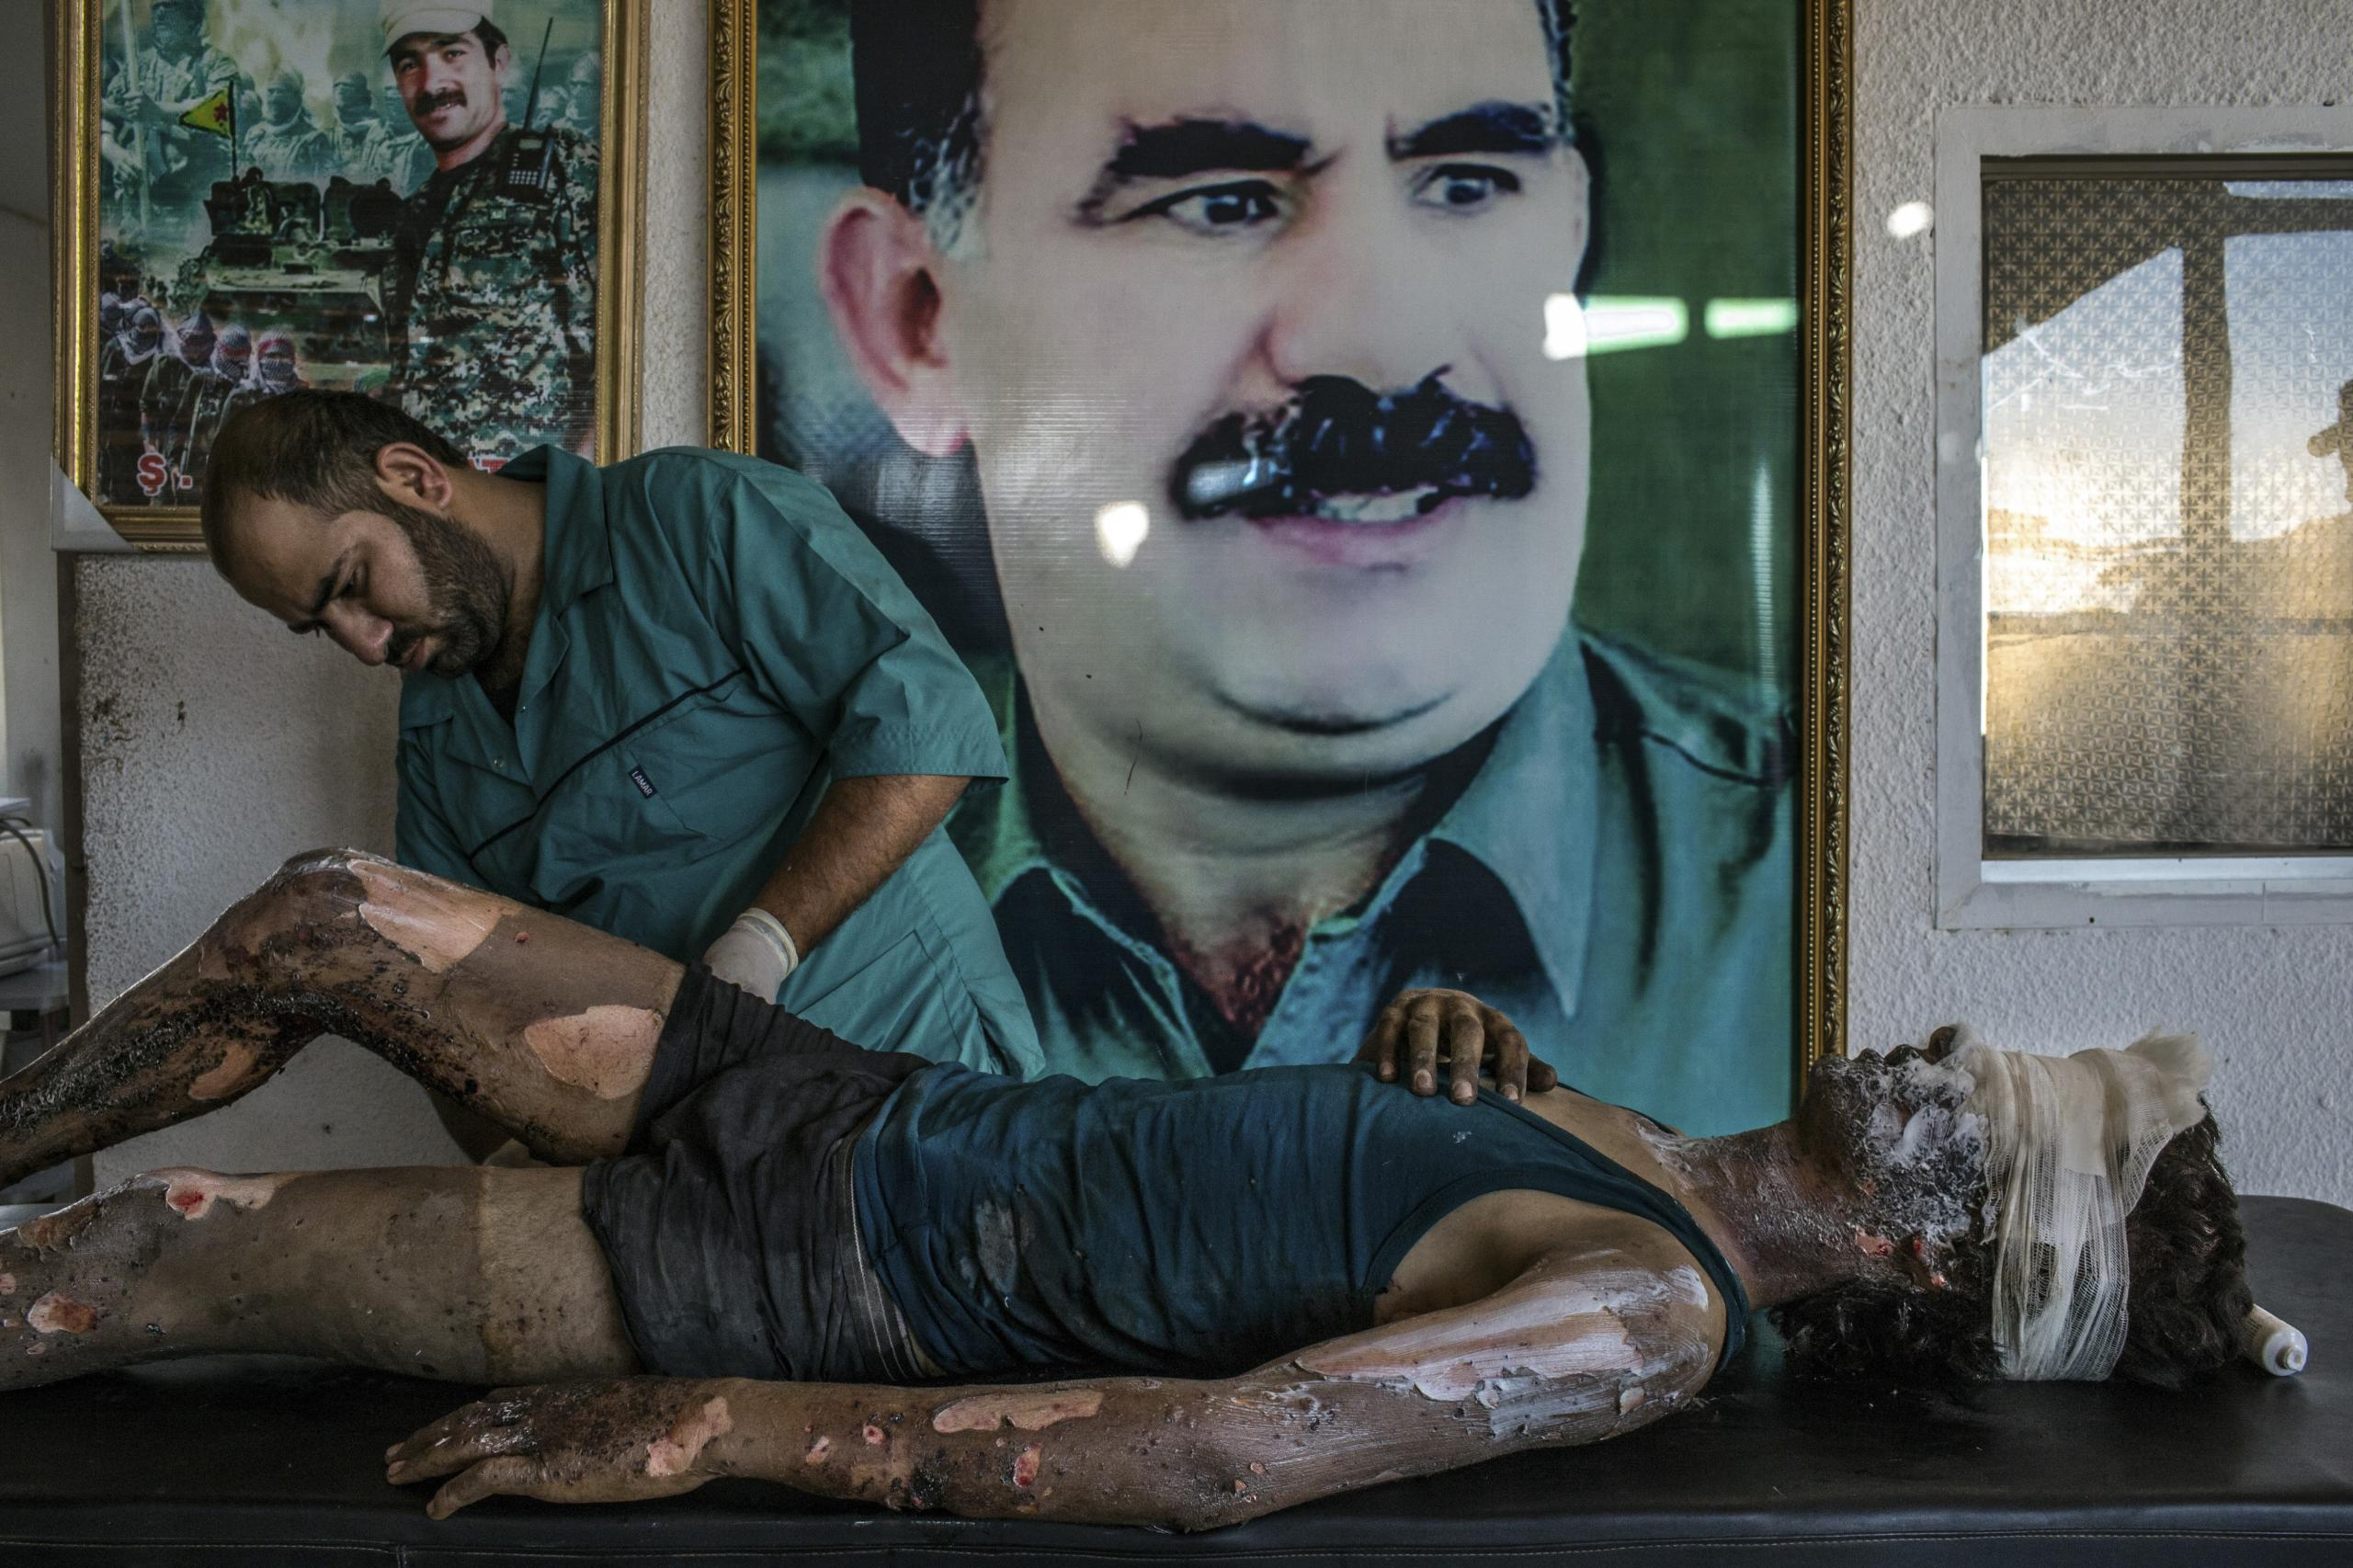 IS Fighter Treated at Kurdish Hospital by Mauricio Lima. A doctor rubs ointment on the burns of Jacob, a 16-year-old fighter from the group calling itself Islamic State (IS), in front of a poster of Abdullah Öcalan, leader of the Kurdistan Workers' Party (PKK), at a hospital in Al-Hasaka, northern Syria.